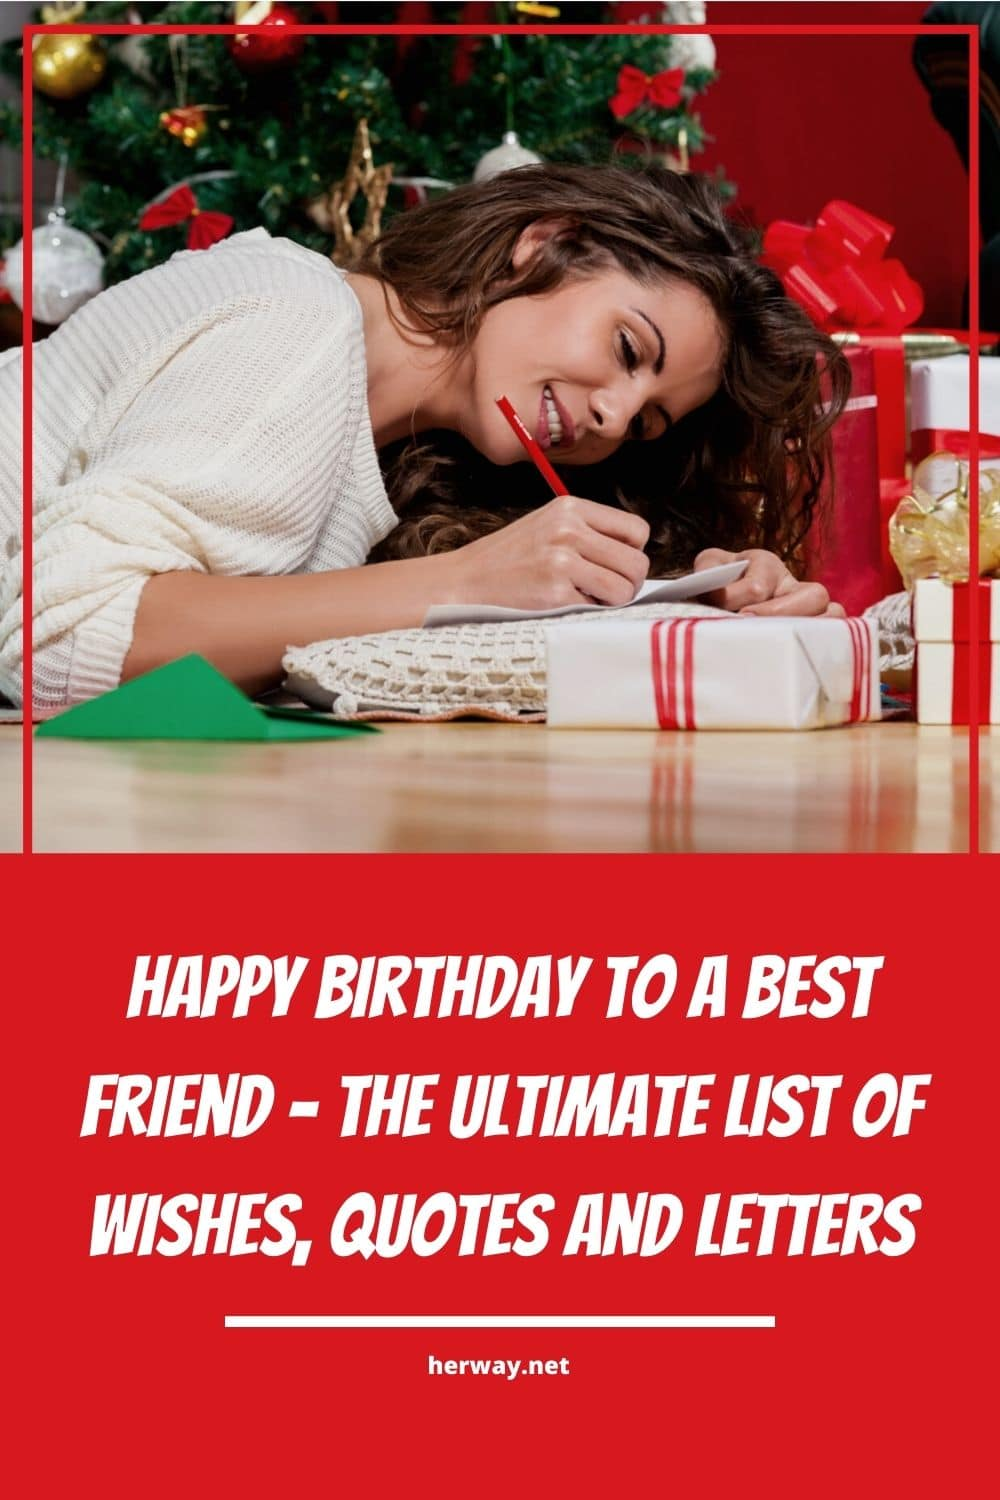 Happy Birthday To A Best Friend - The Ultimate List Of Wishes, Quotes And Letters